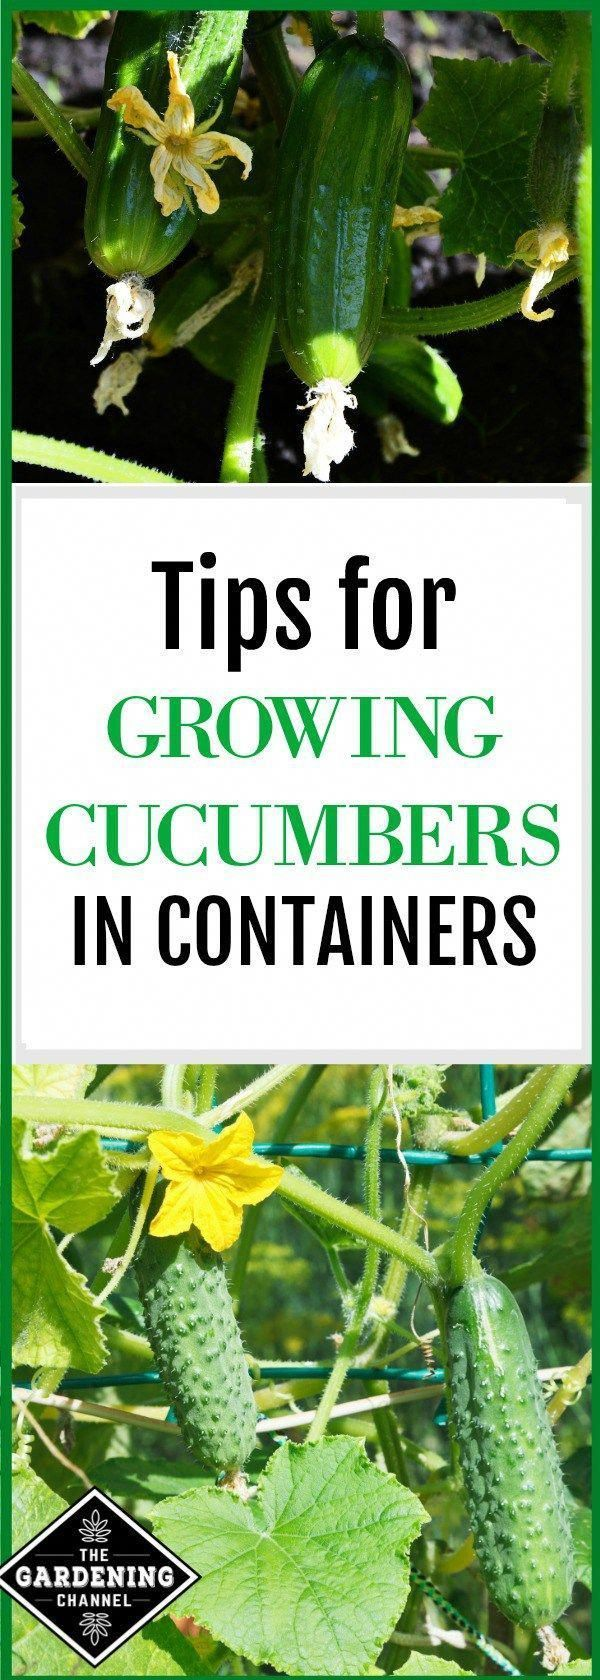 Growing cucumbers in containers Follow these tips and you can grow cucumbers easily any place in your garden with 6 hours of sun